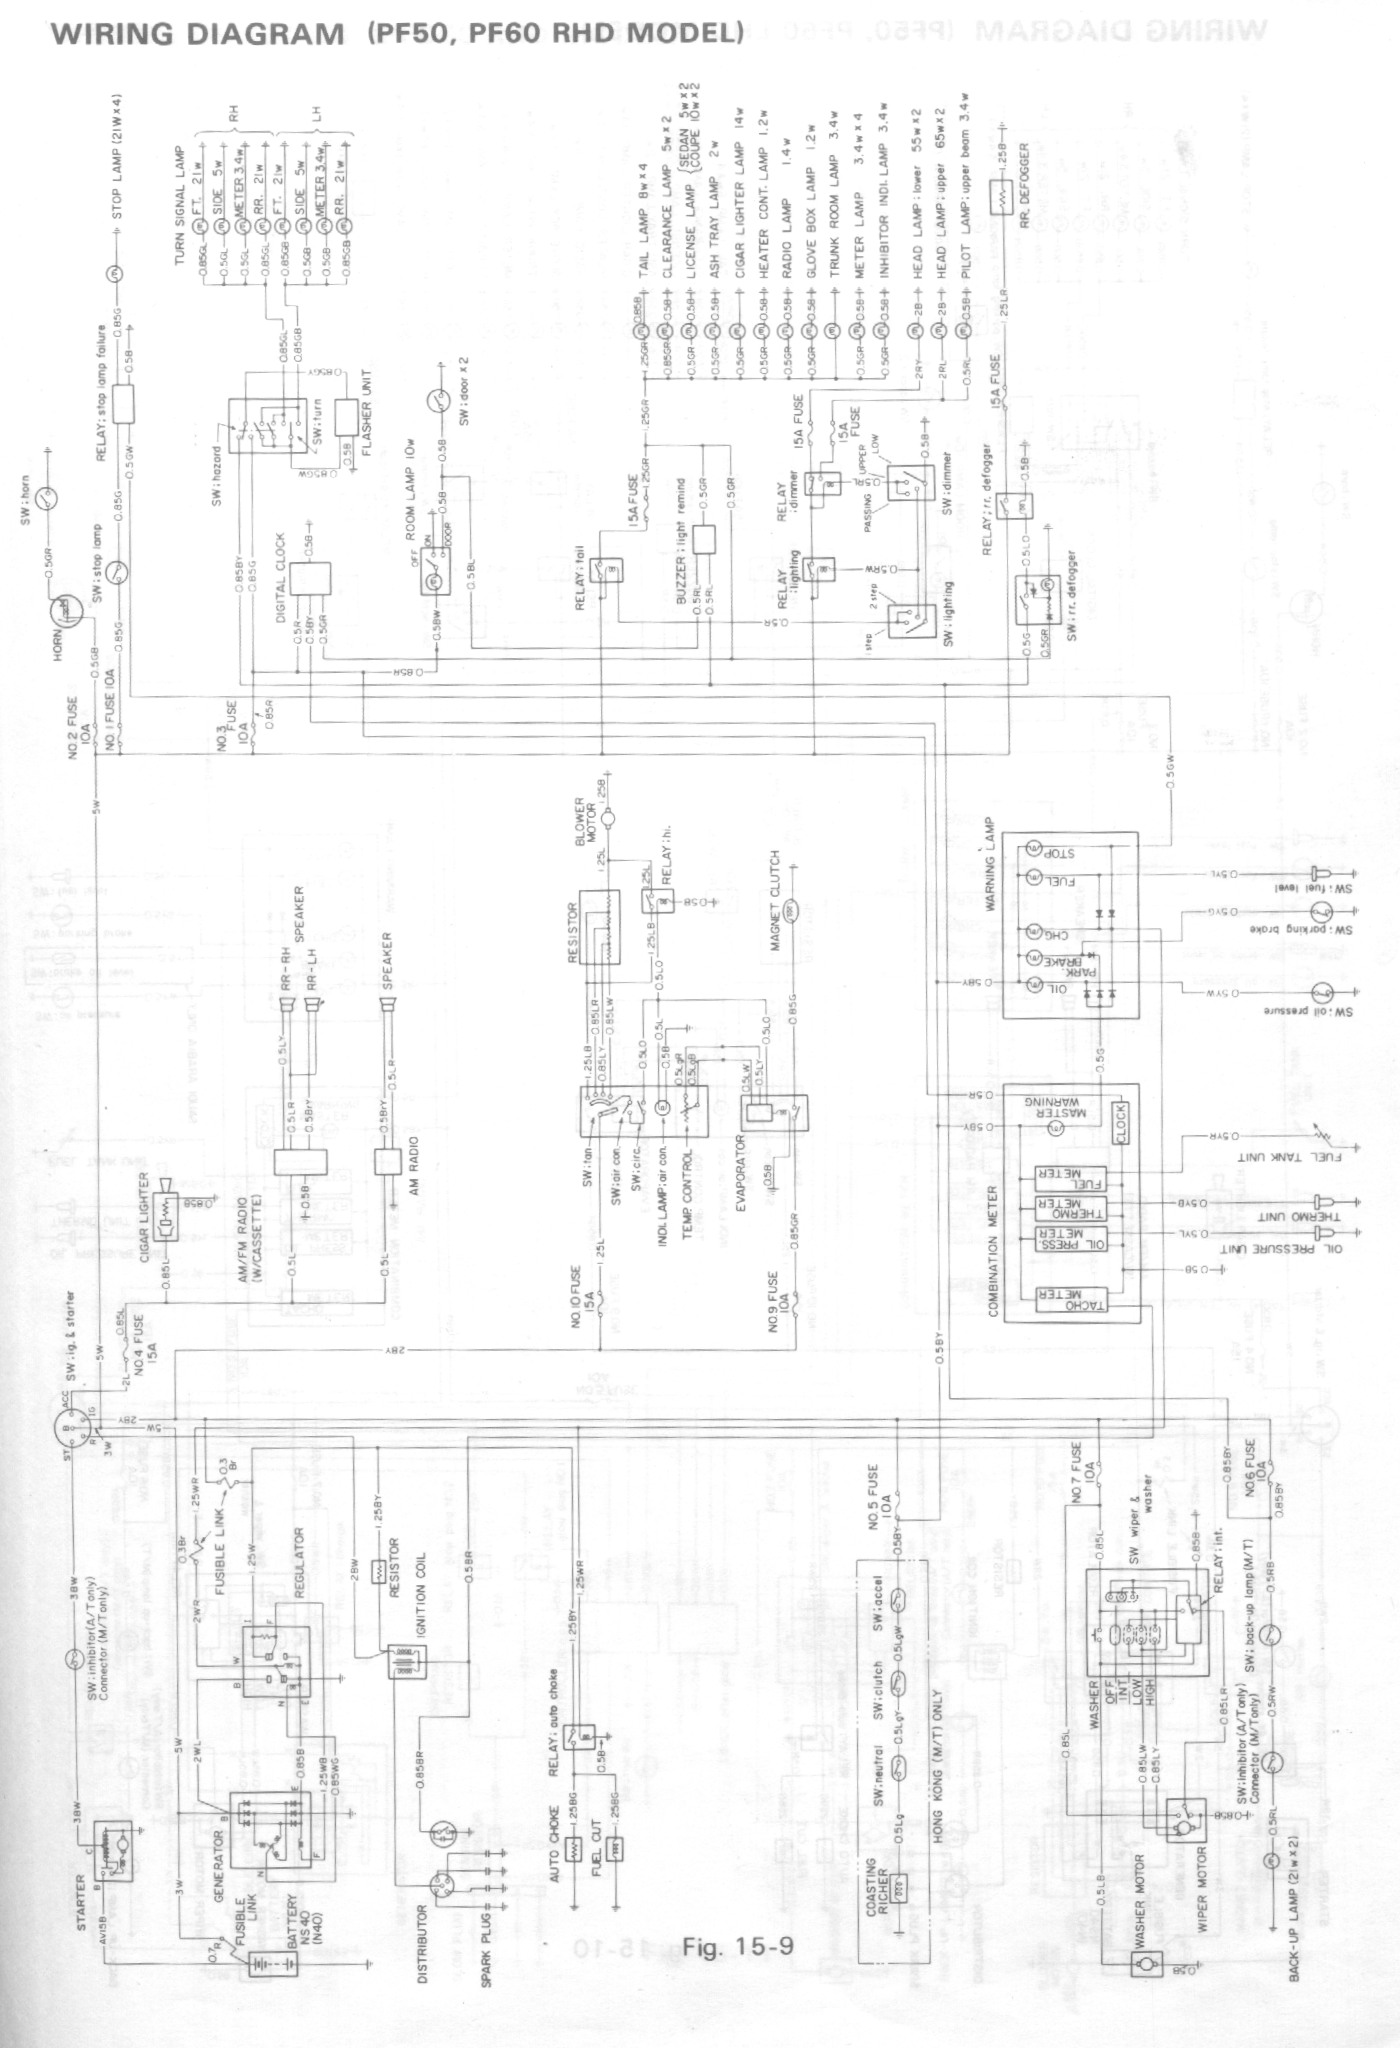 Isuzu Gemini Wiring Diagram Reinvent Your Ozgemini Com U2022 View Topic For 1983 Tg Gem Rh 2003 Npr Relay 2006